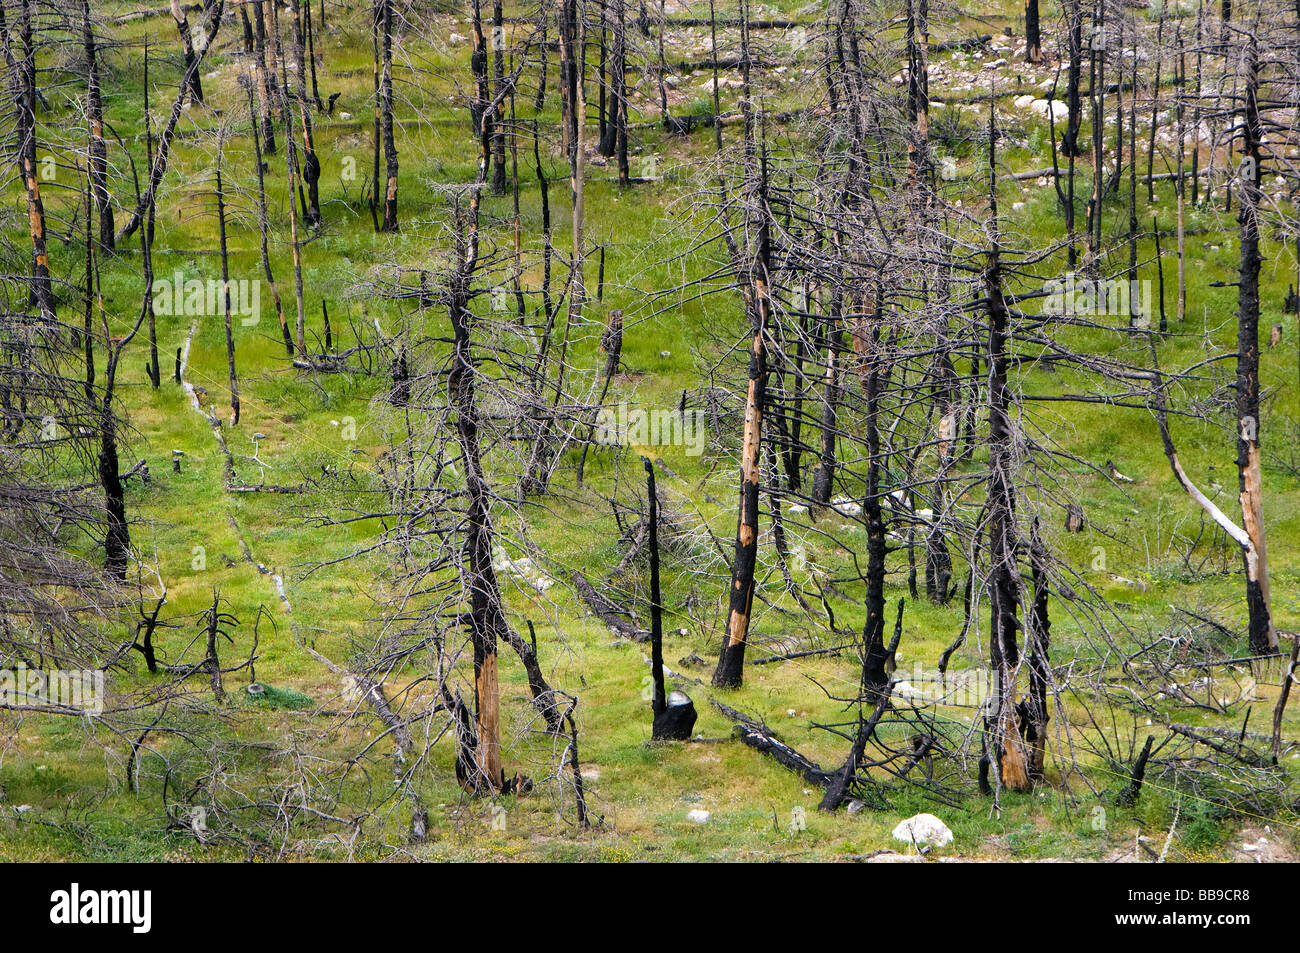 Eco catastrophe- burned trees after massive forest fire - Stock Image